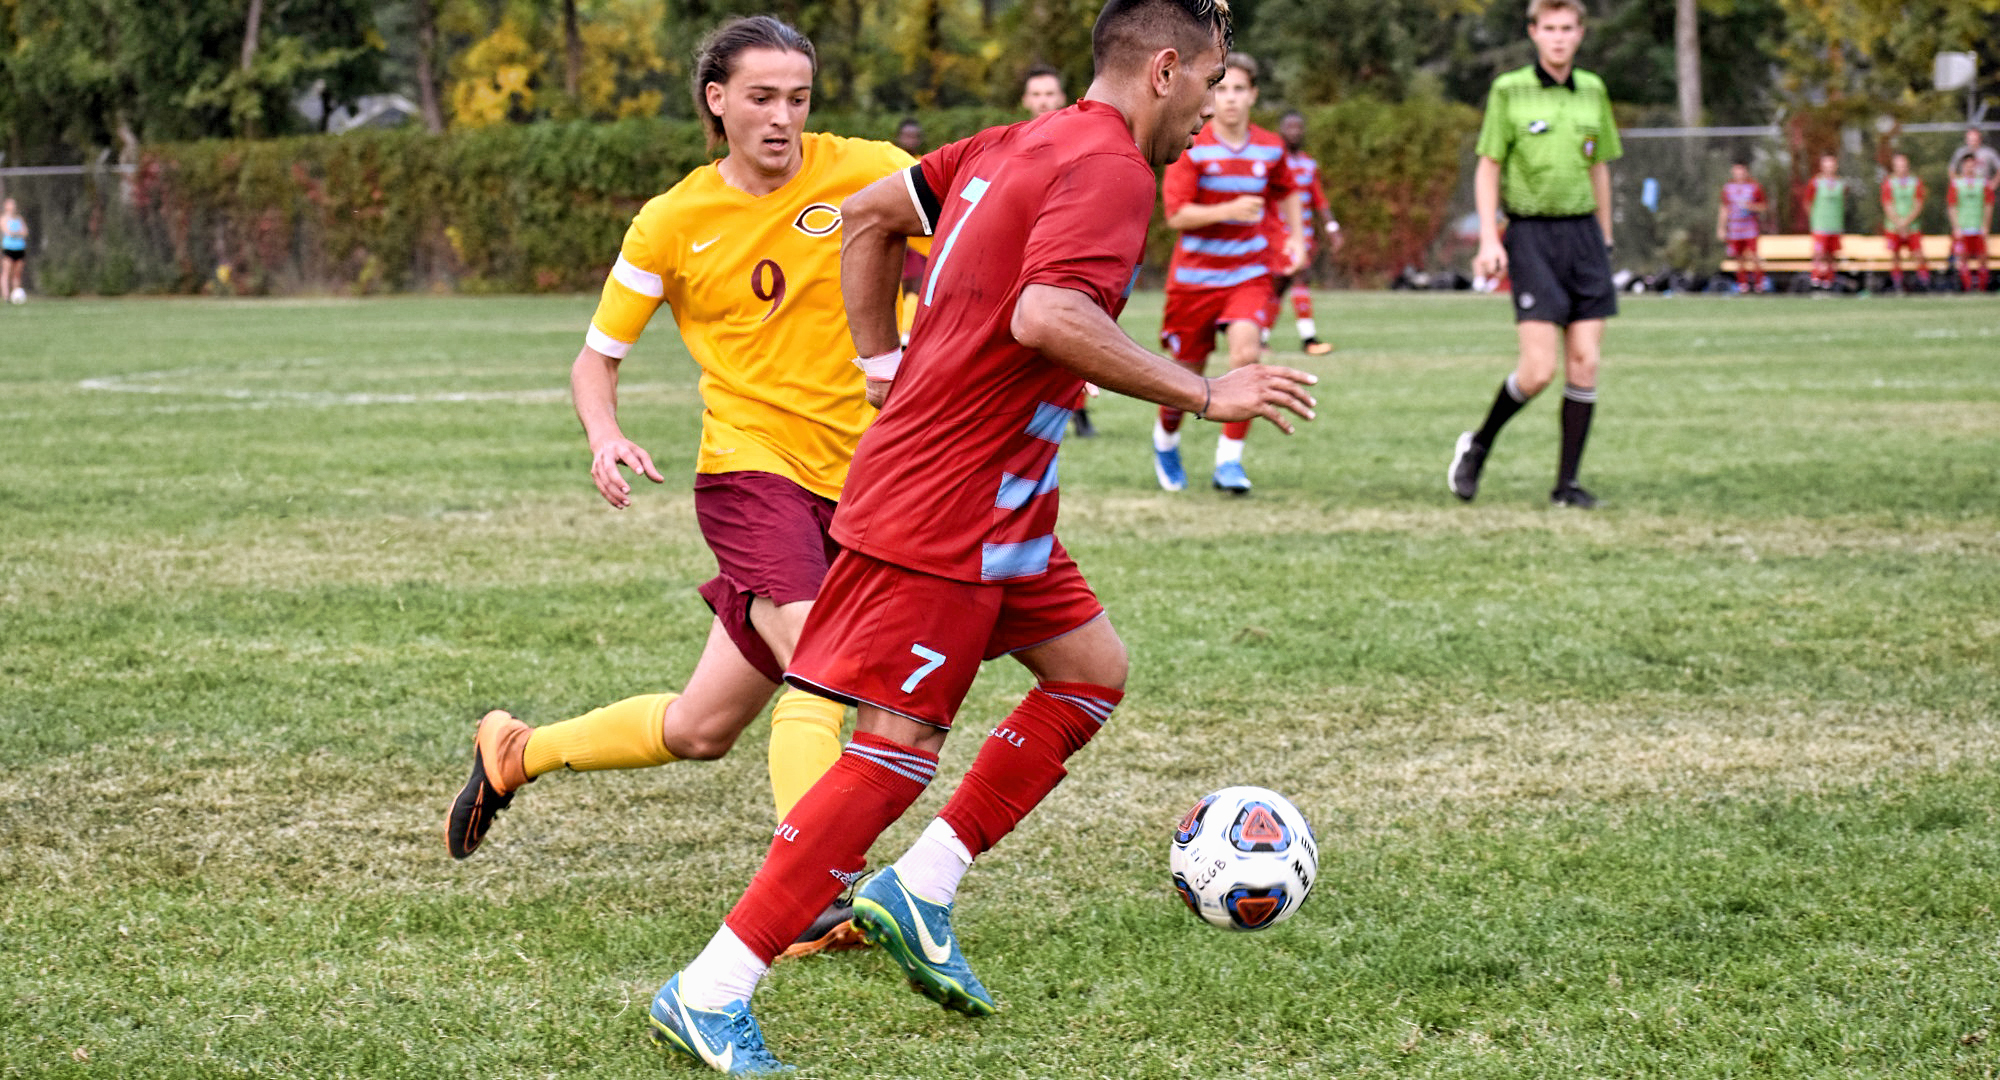 Junior Justin Froslie scored the game-winning goal on a penalty kick in the Cobbers' 1-0 win at Carleton.